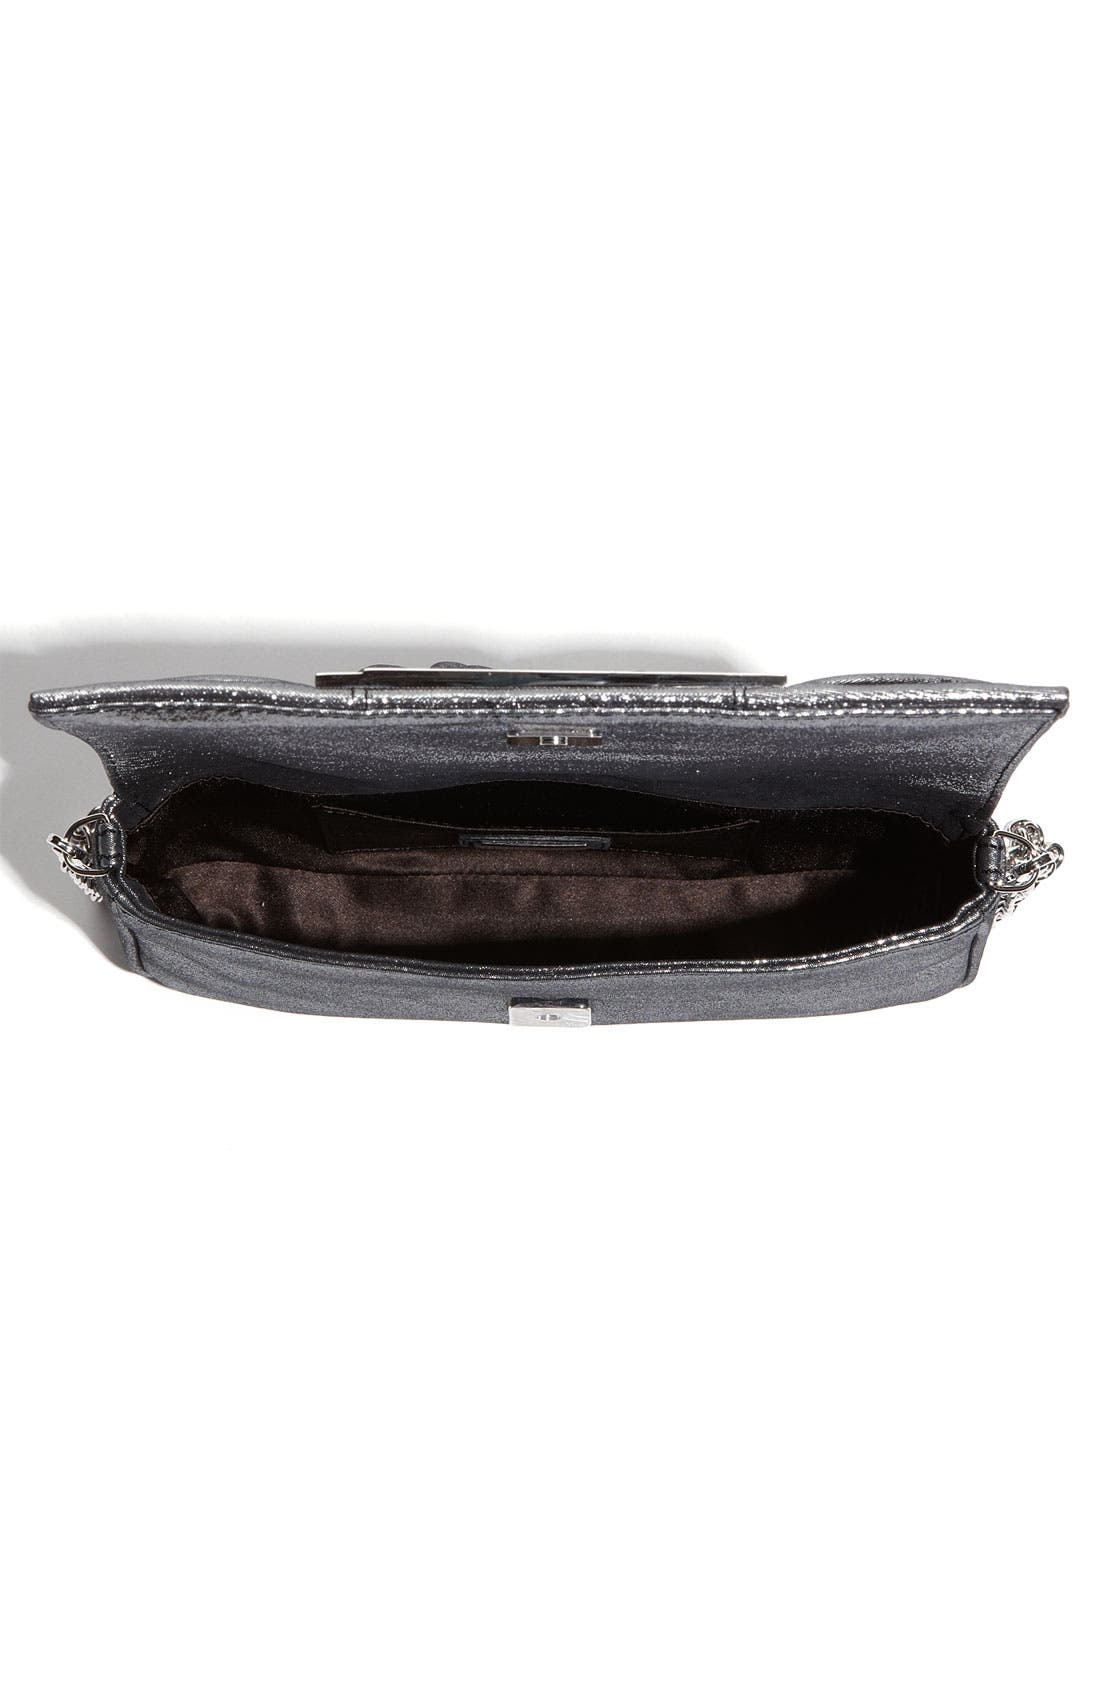 Alternate Image 3  - Fendi 'Mia' Evening Bag